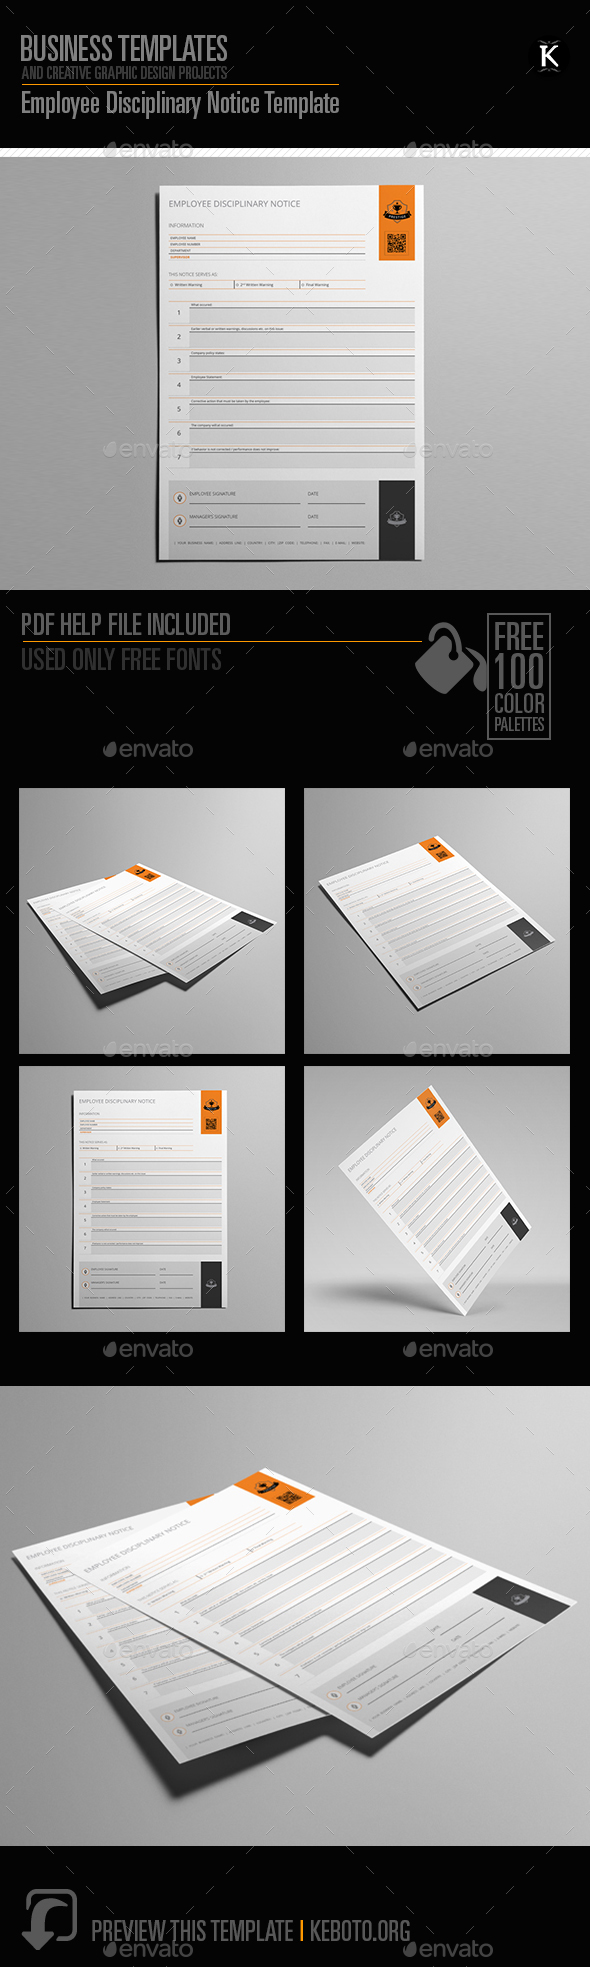 Employee Disciplinary Notice Template - Miscellaneous Print Templates